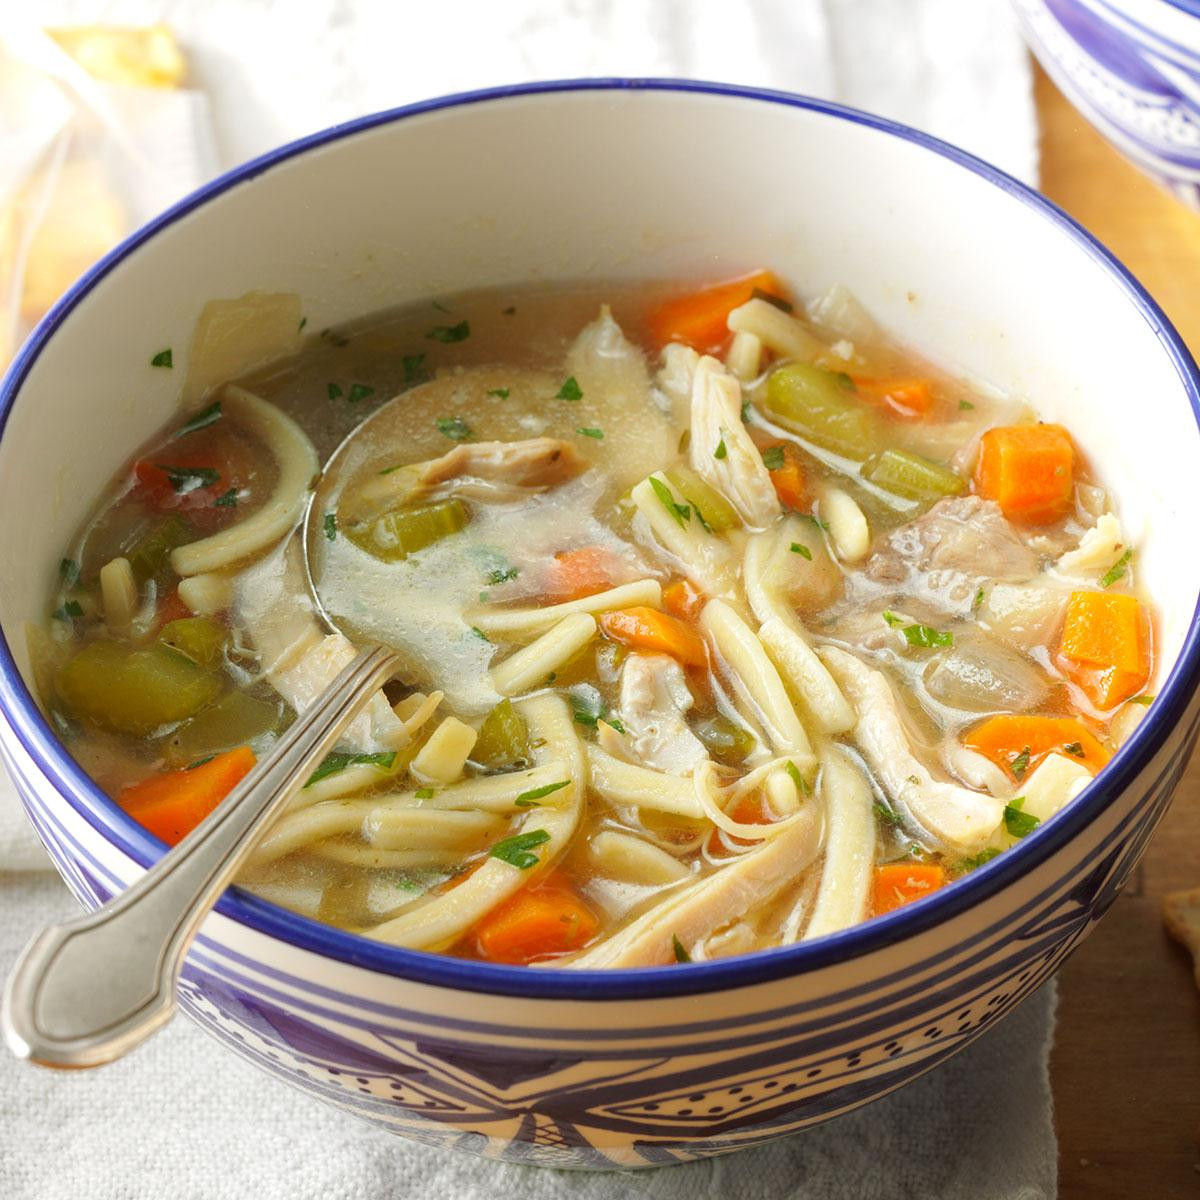 Chicken Noodle Soup Ingredients  The Ultimate Chicken Noodle Soup Recipe